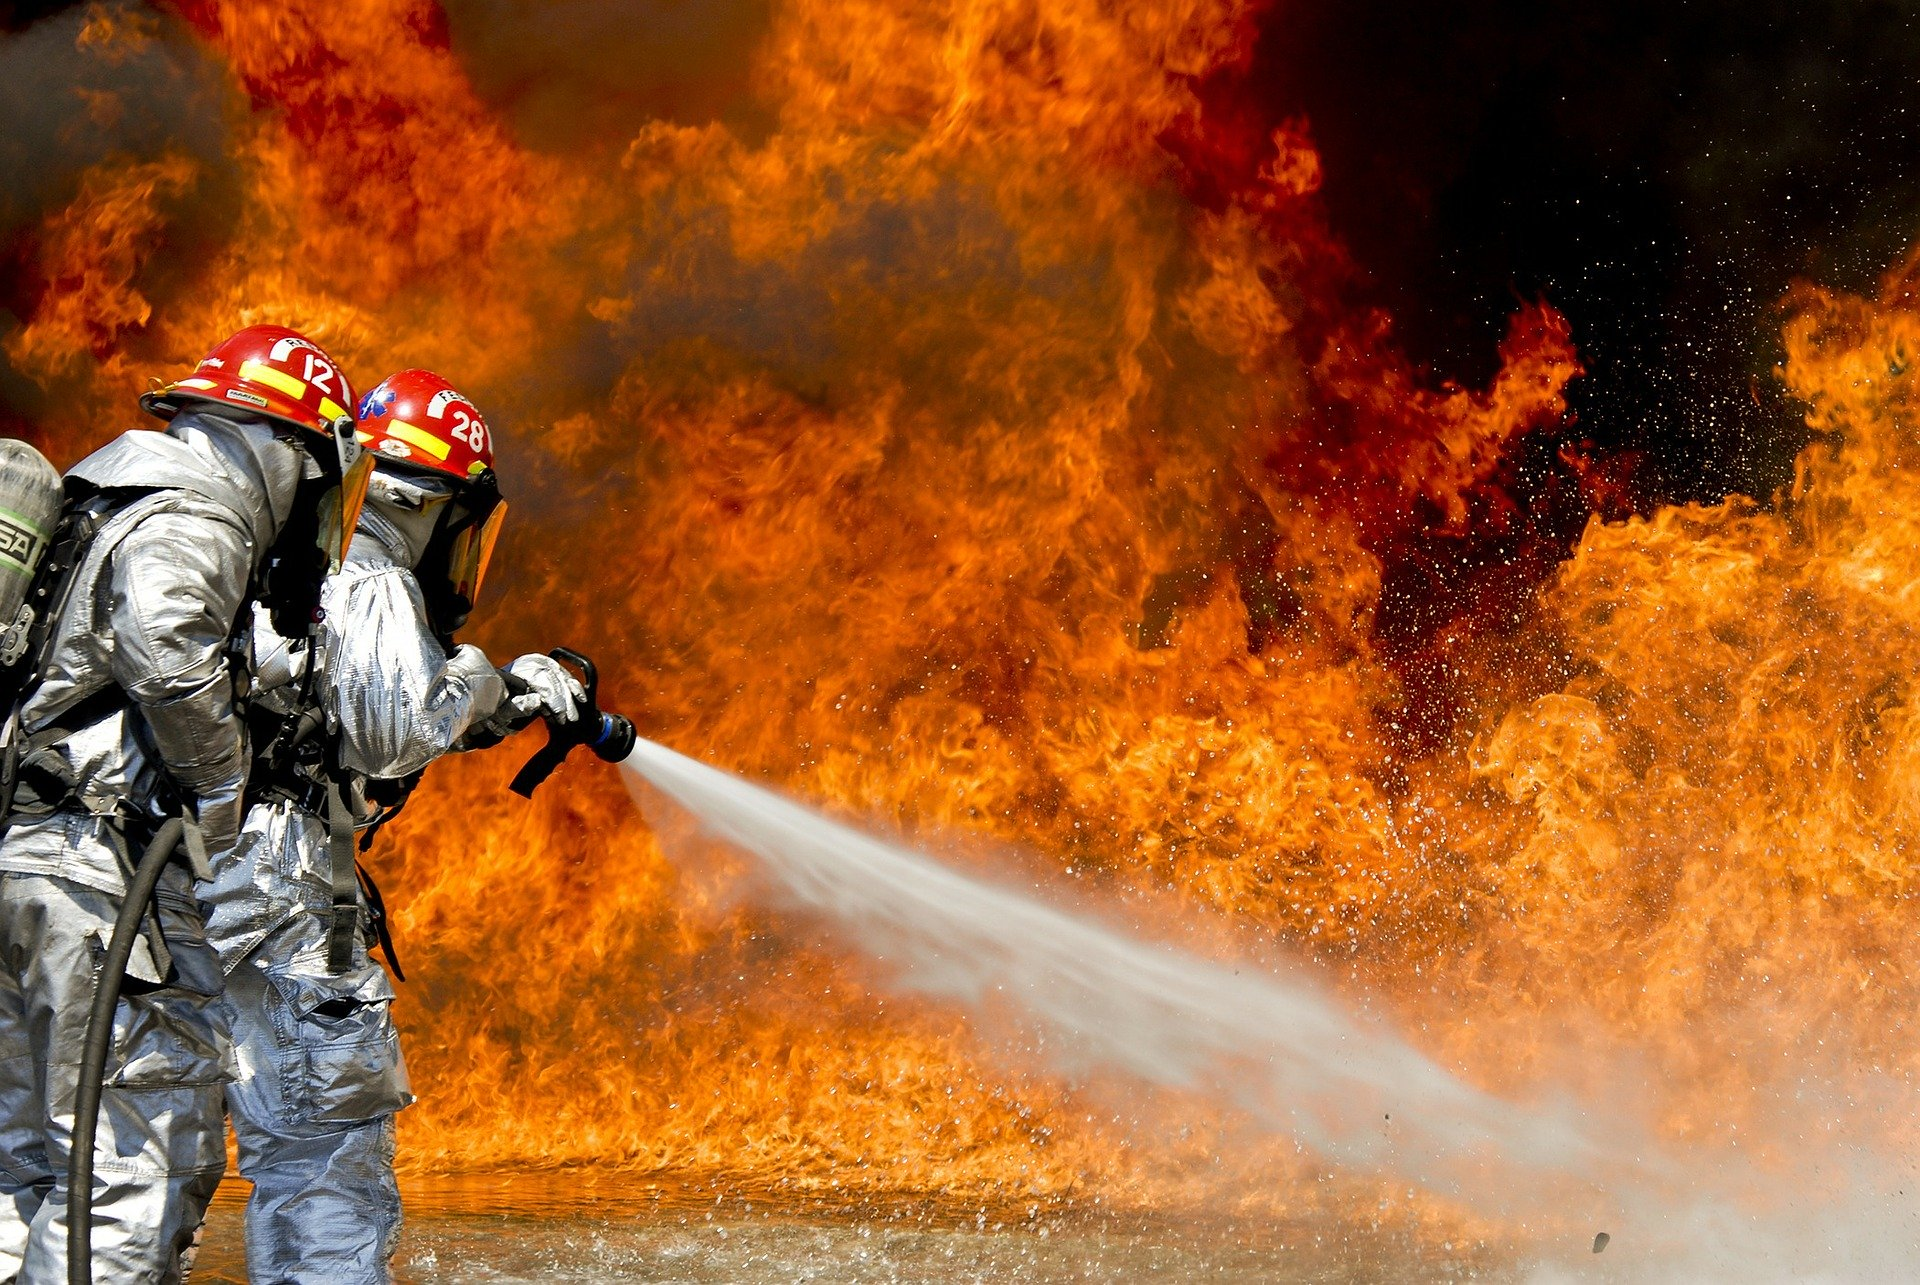 Getting Closer to Fire: How Does a Fire Proximity Suit Work?